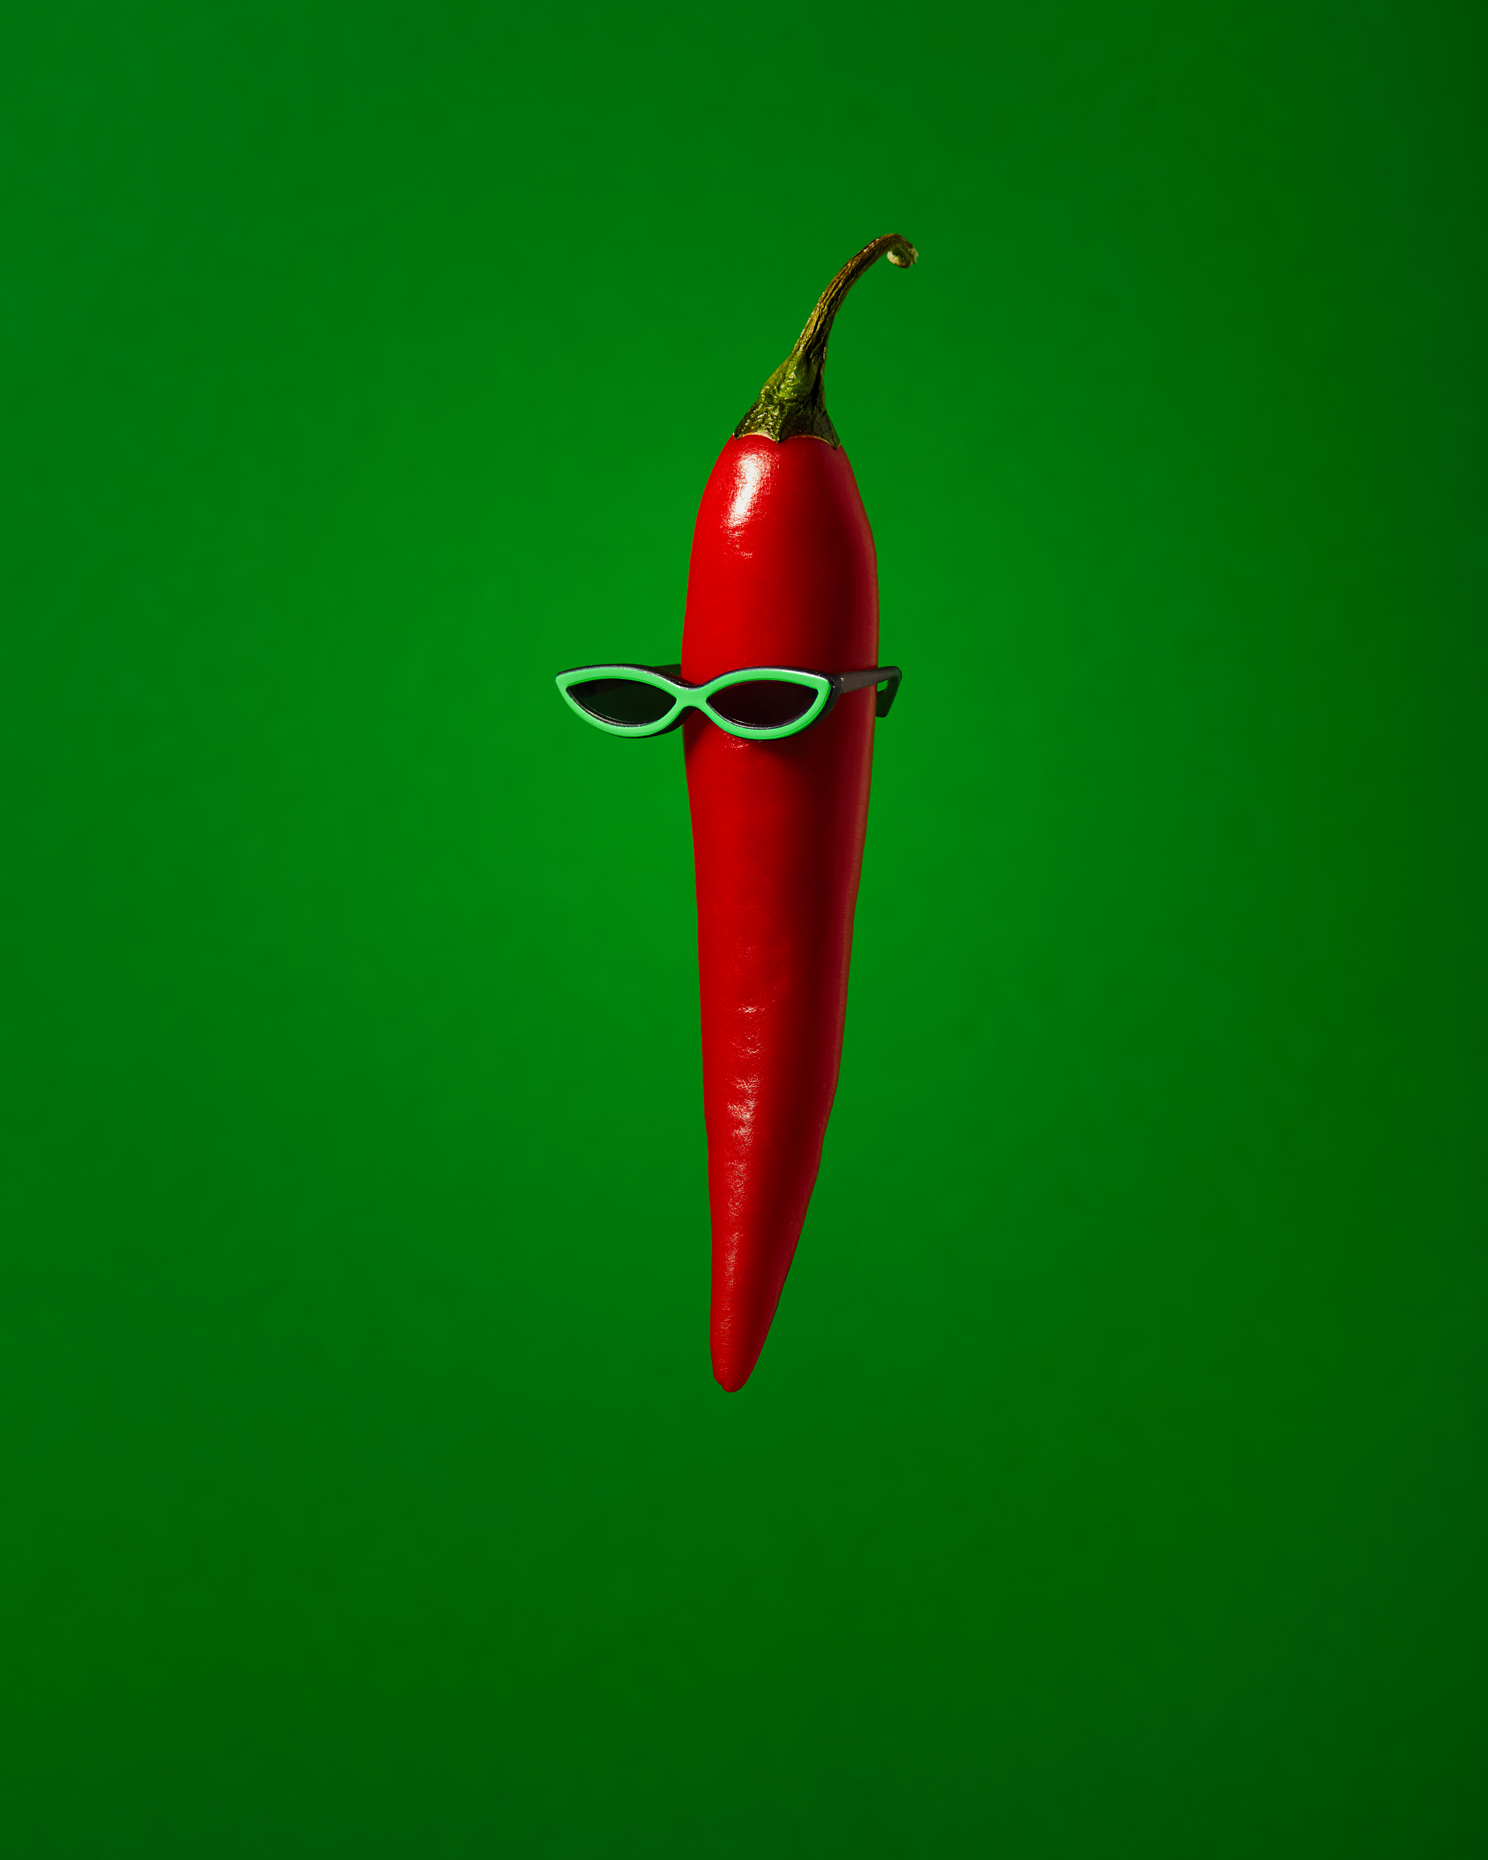 creative still life: red chili pepper